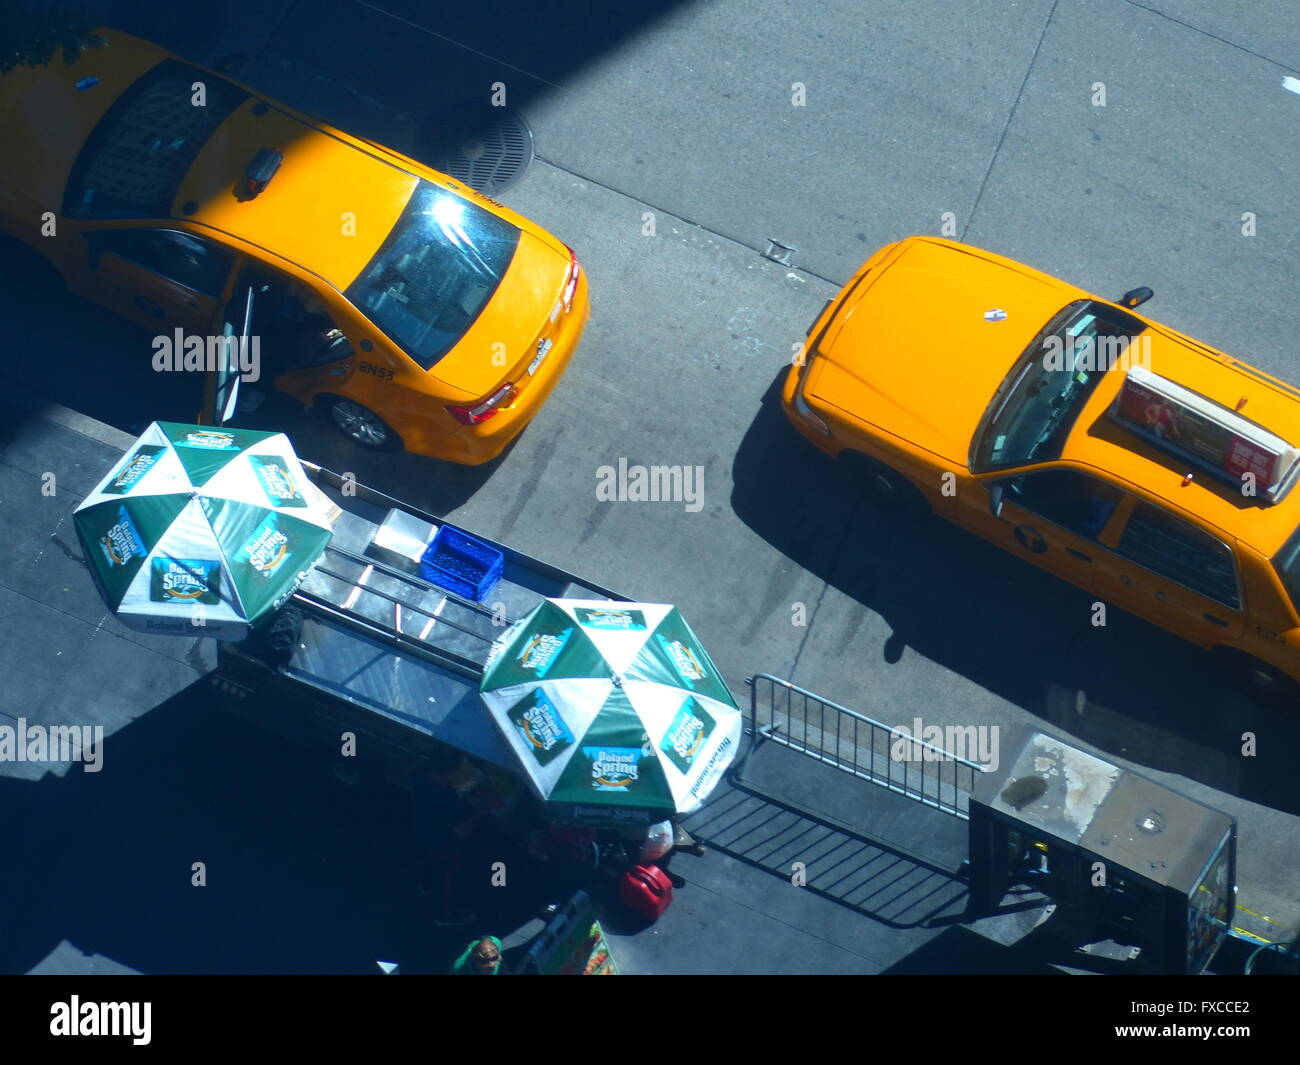 New York City yellowcabs - Stock Image